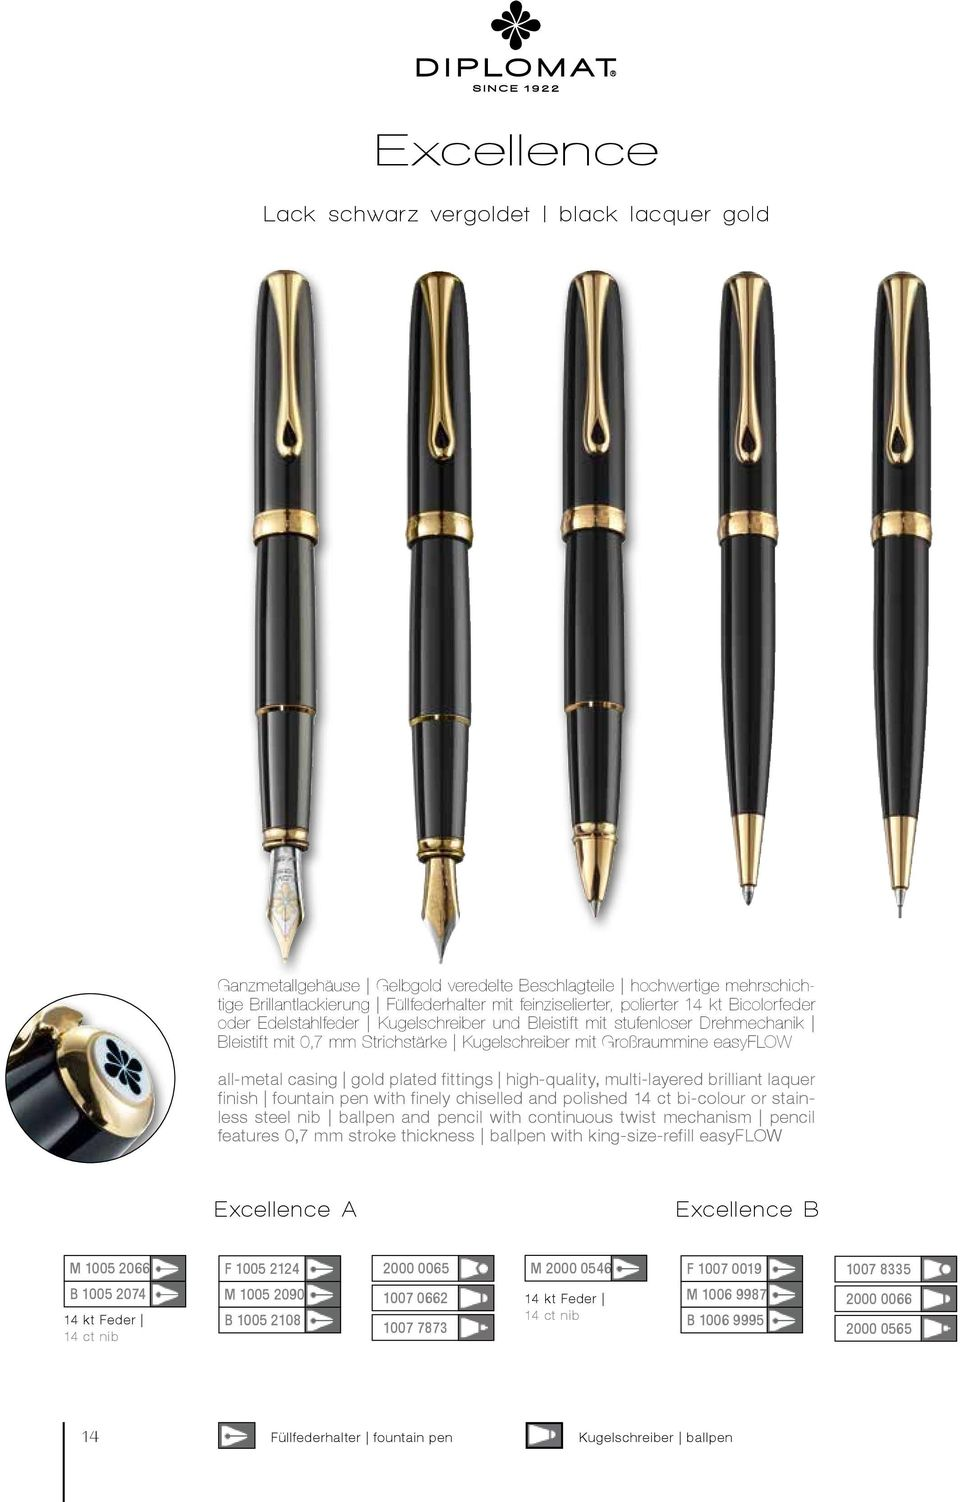 fittings high-quality, multi-layered brilliant laquer finish fountain pen with finely chiselled and polished 14 ct bi-colour or stainless steel nib ballpen and pencil with continuous twist mechanism